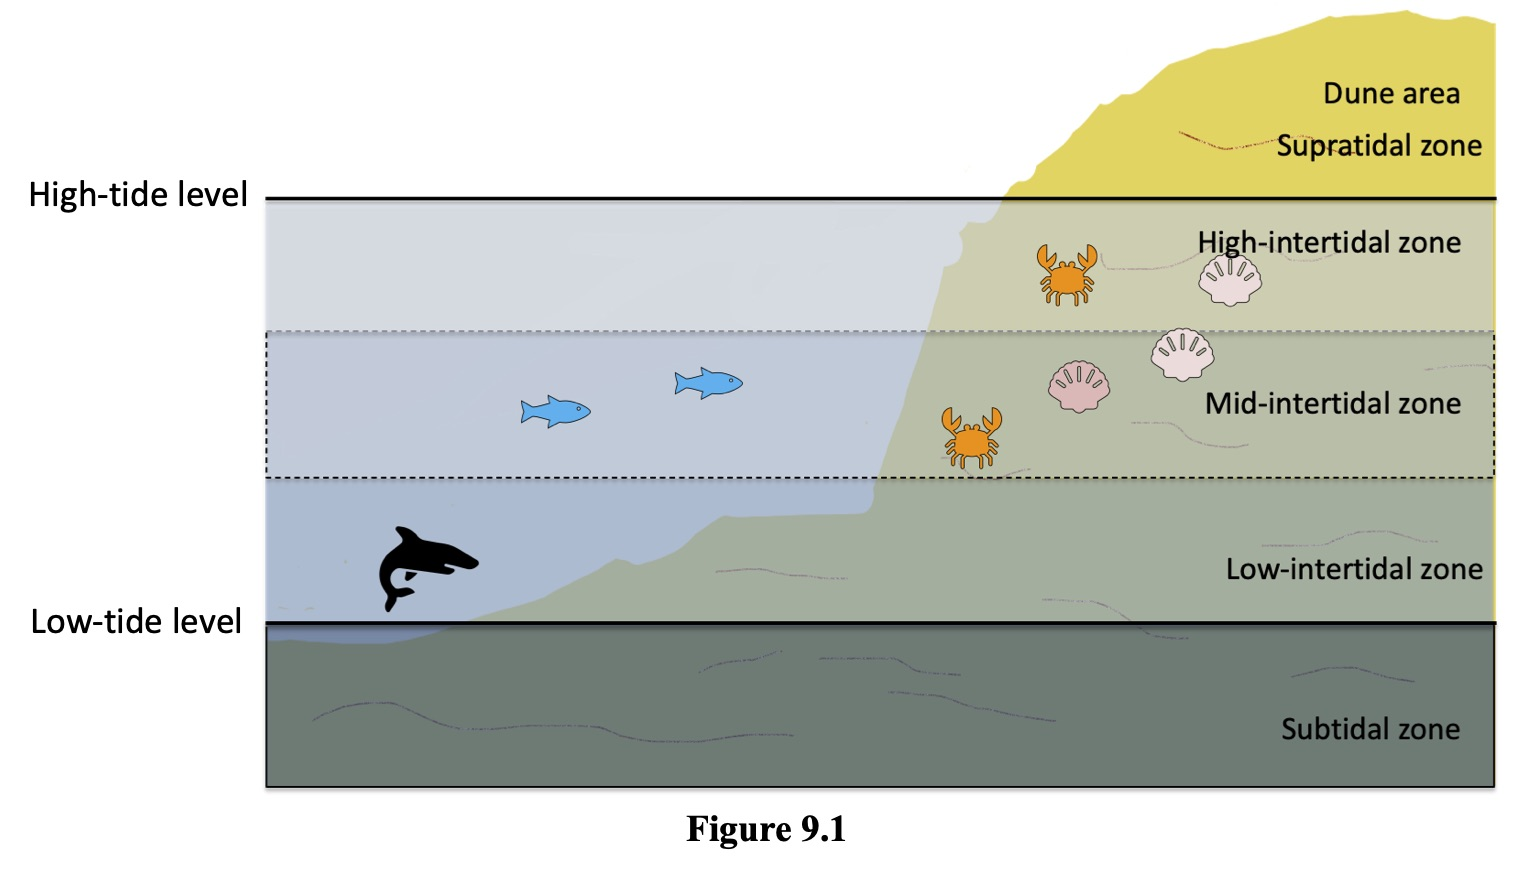 Figure 9.1 shows the subtidal zone below the low-tide level. The Low-tintertidal zone is above the low tide level. The Mid-intertidal zone is above the low-intertidal zone. The hight -intertidal zone is above the mid-intertidal zone and below the high-tide level. The supratidal zone is above the high-tide level. The dune area is above the supratidal zone.